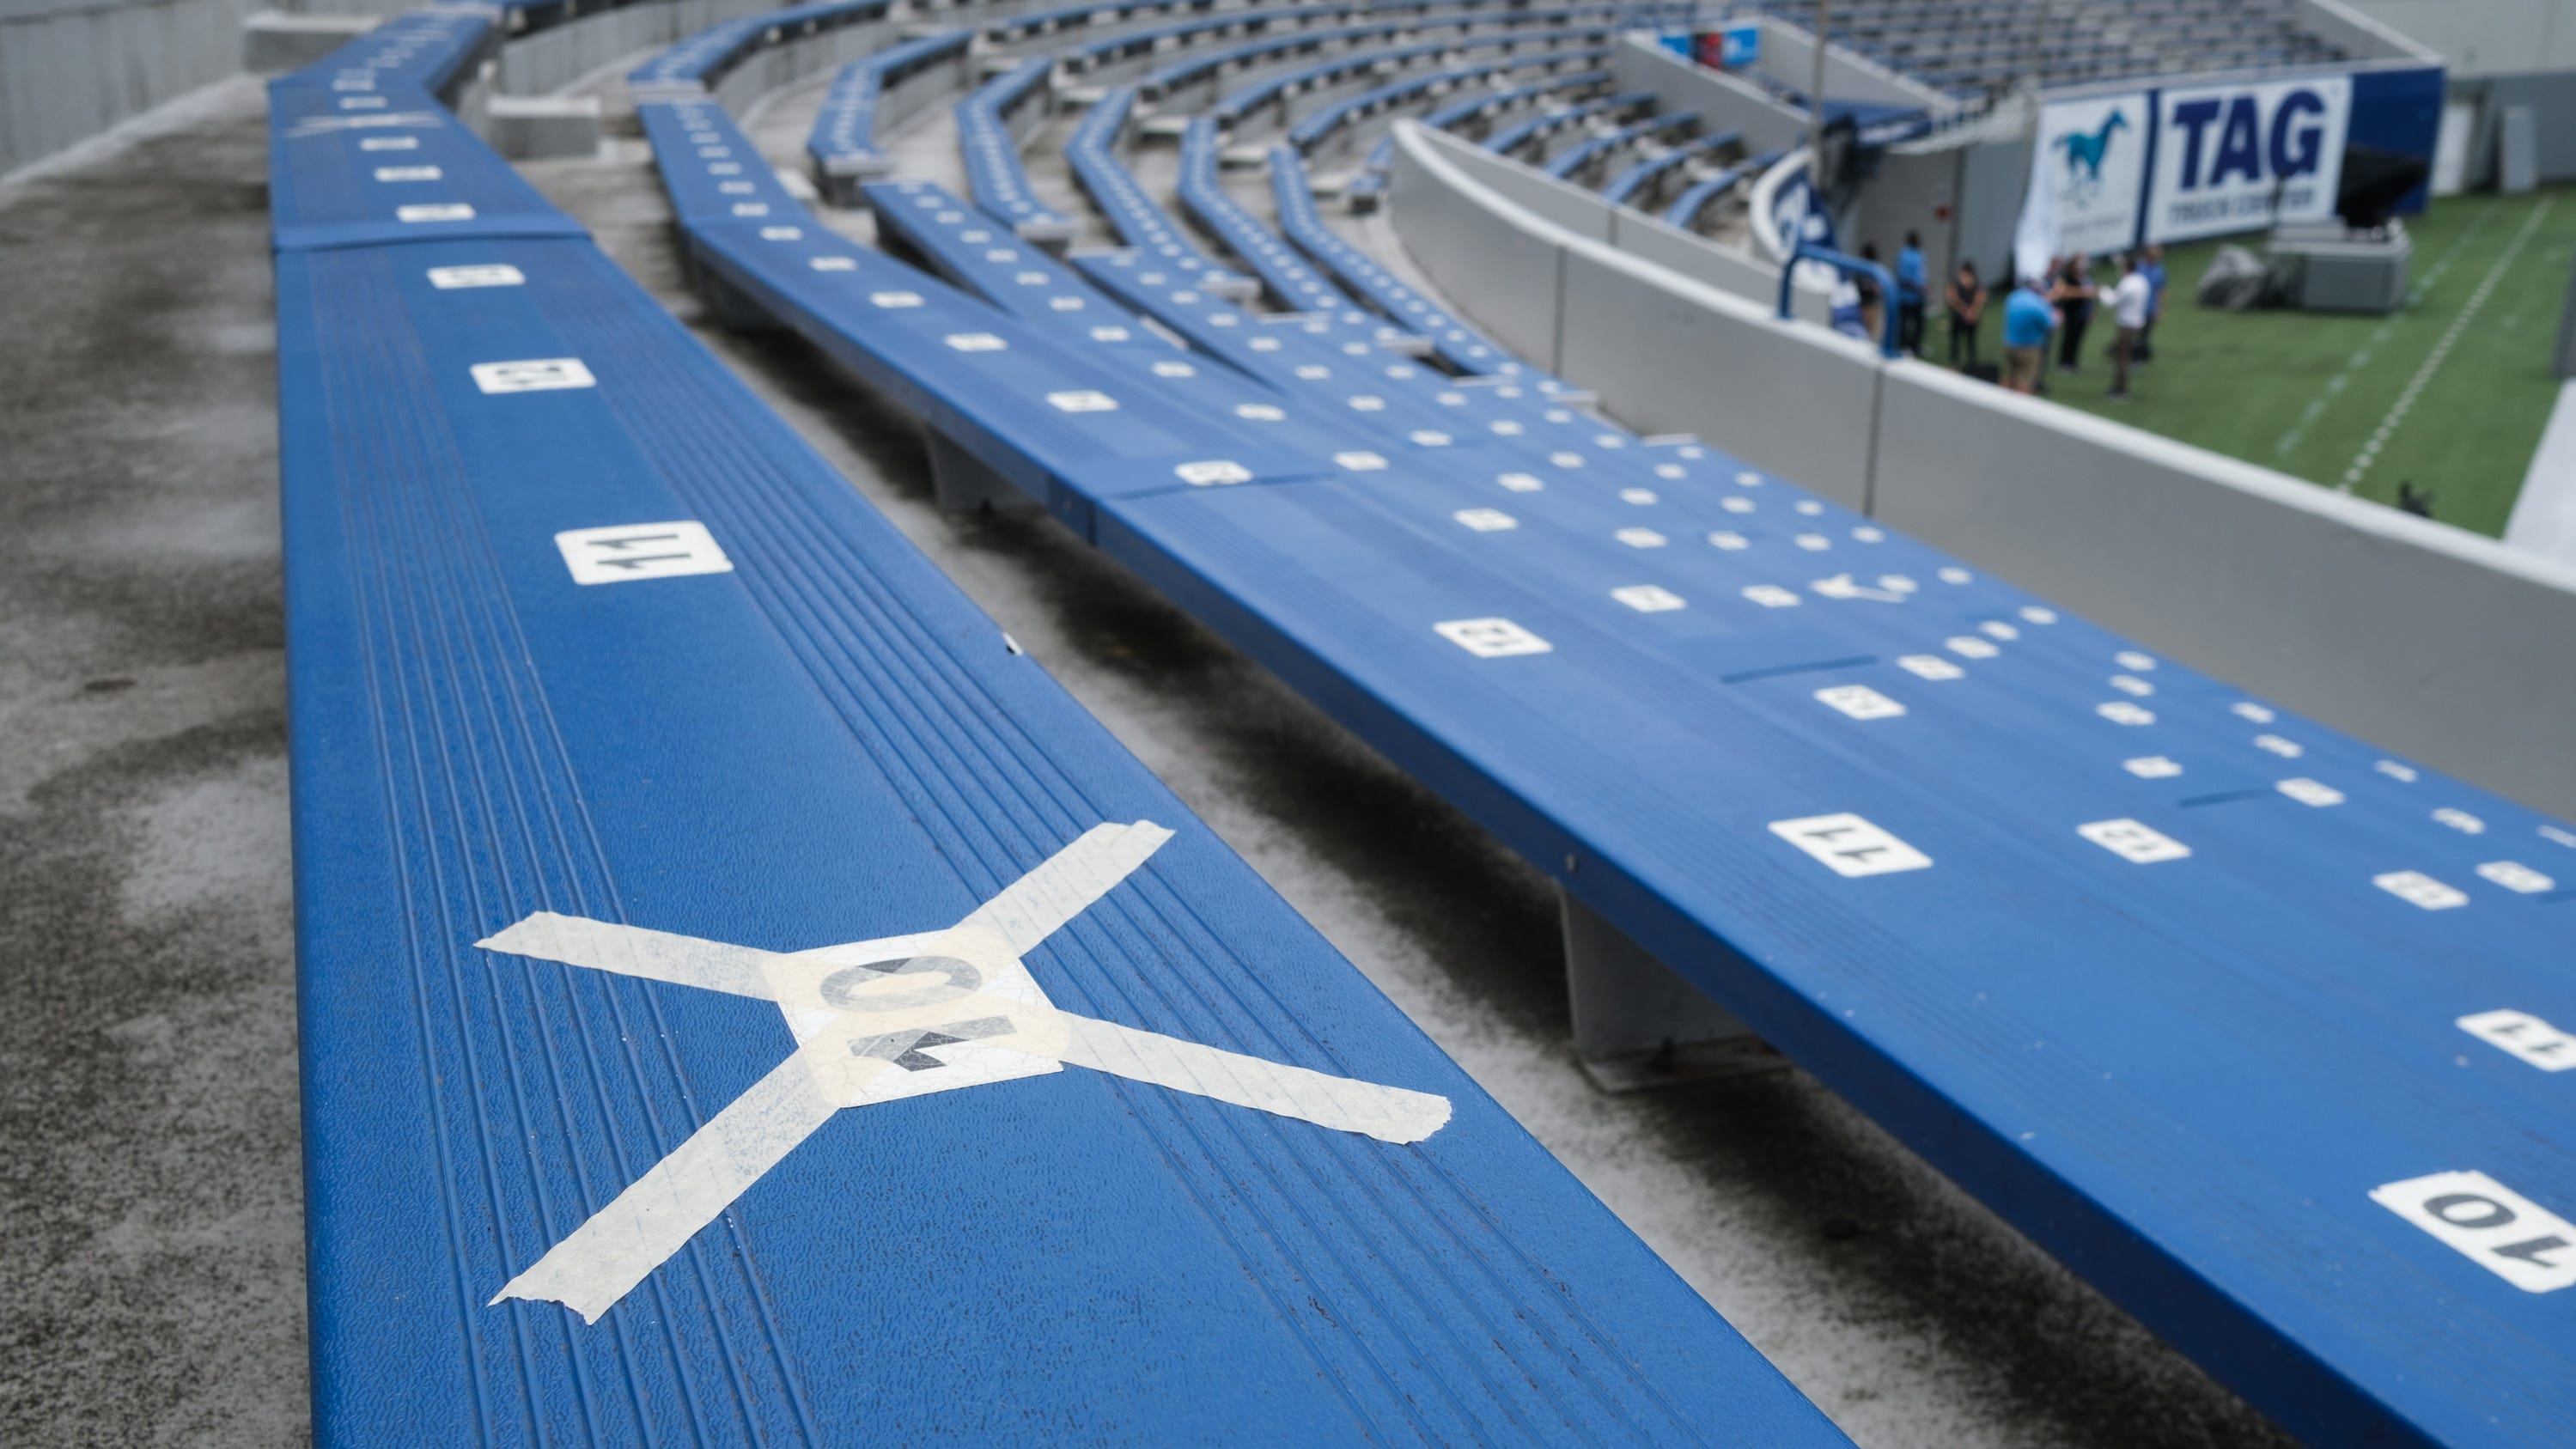 Tape marks off seats in the Liberty Bowl's student section, Friday, Sept. 4, 2020, in Memphis, TN.